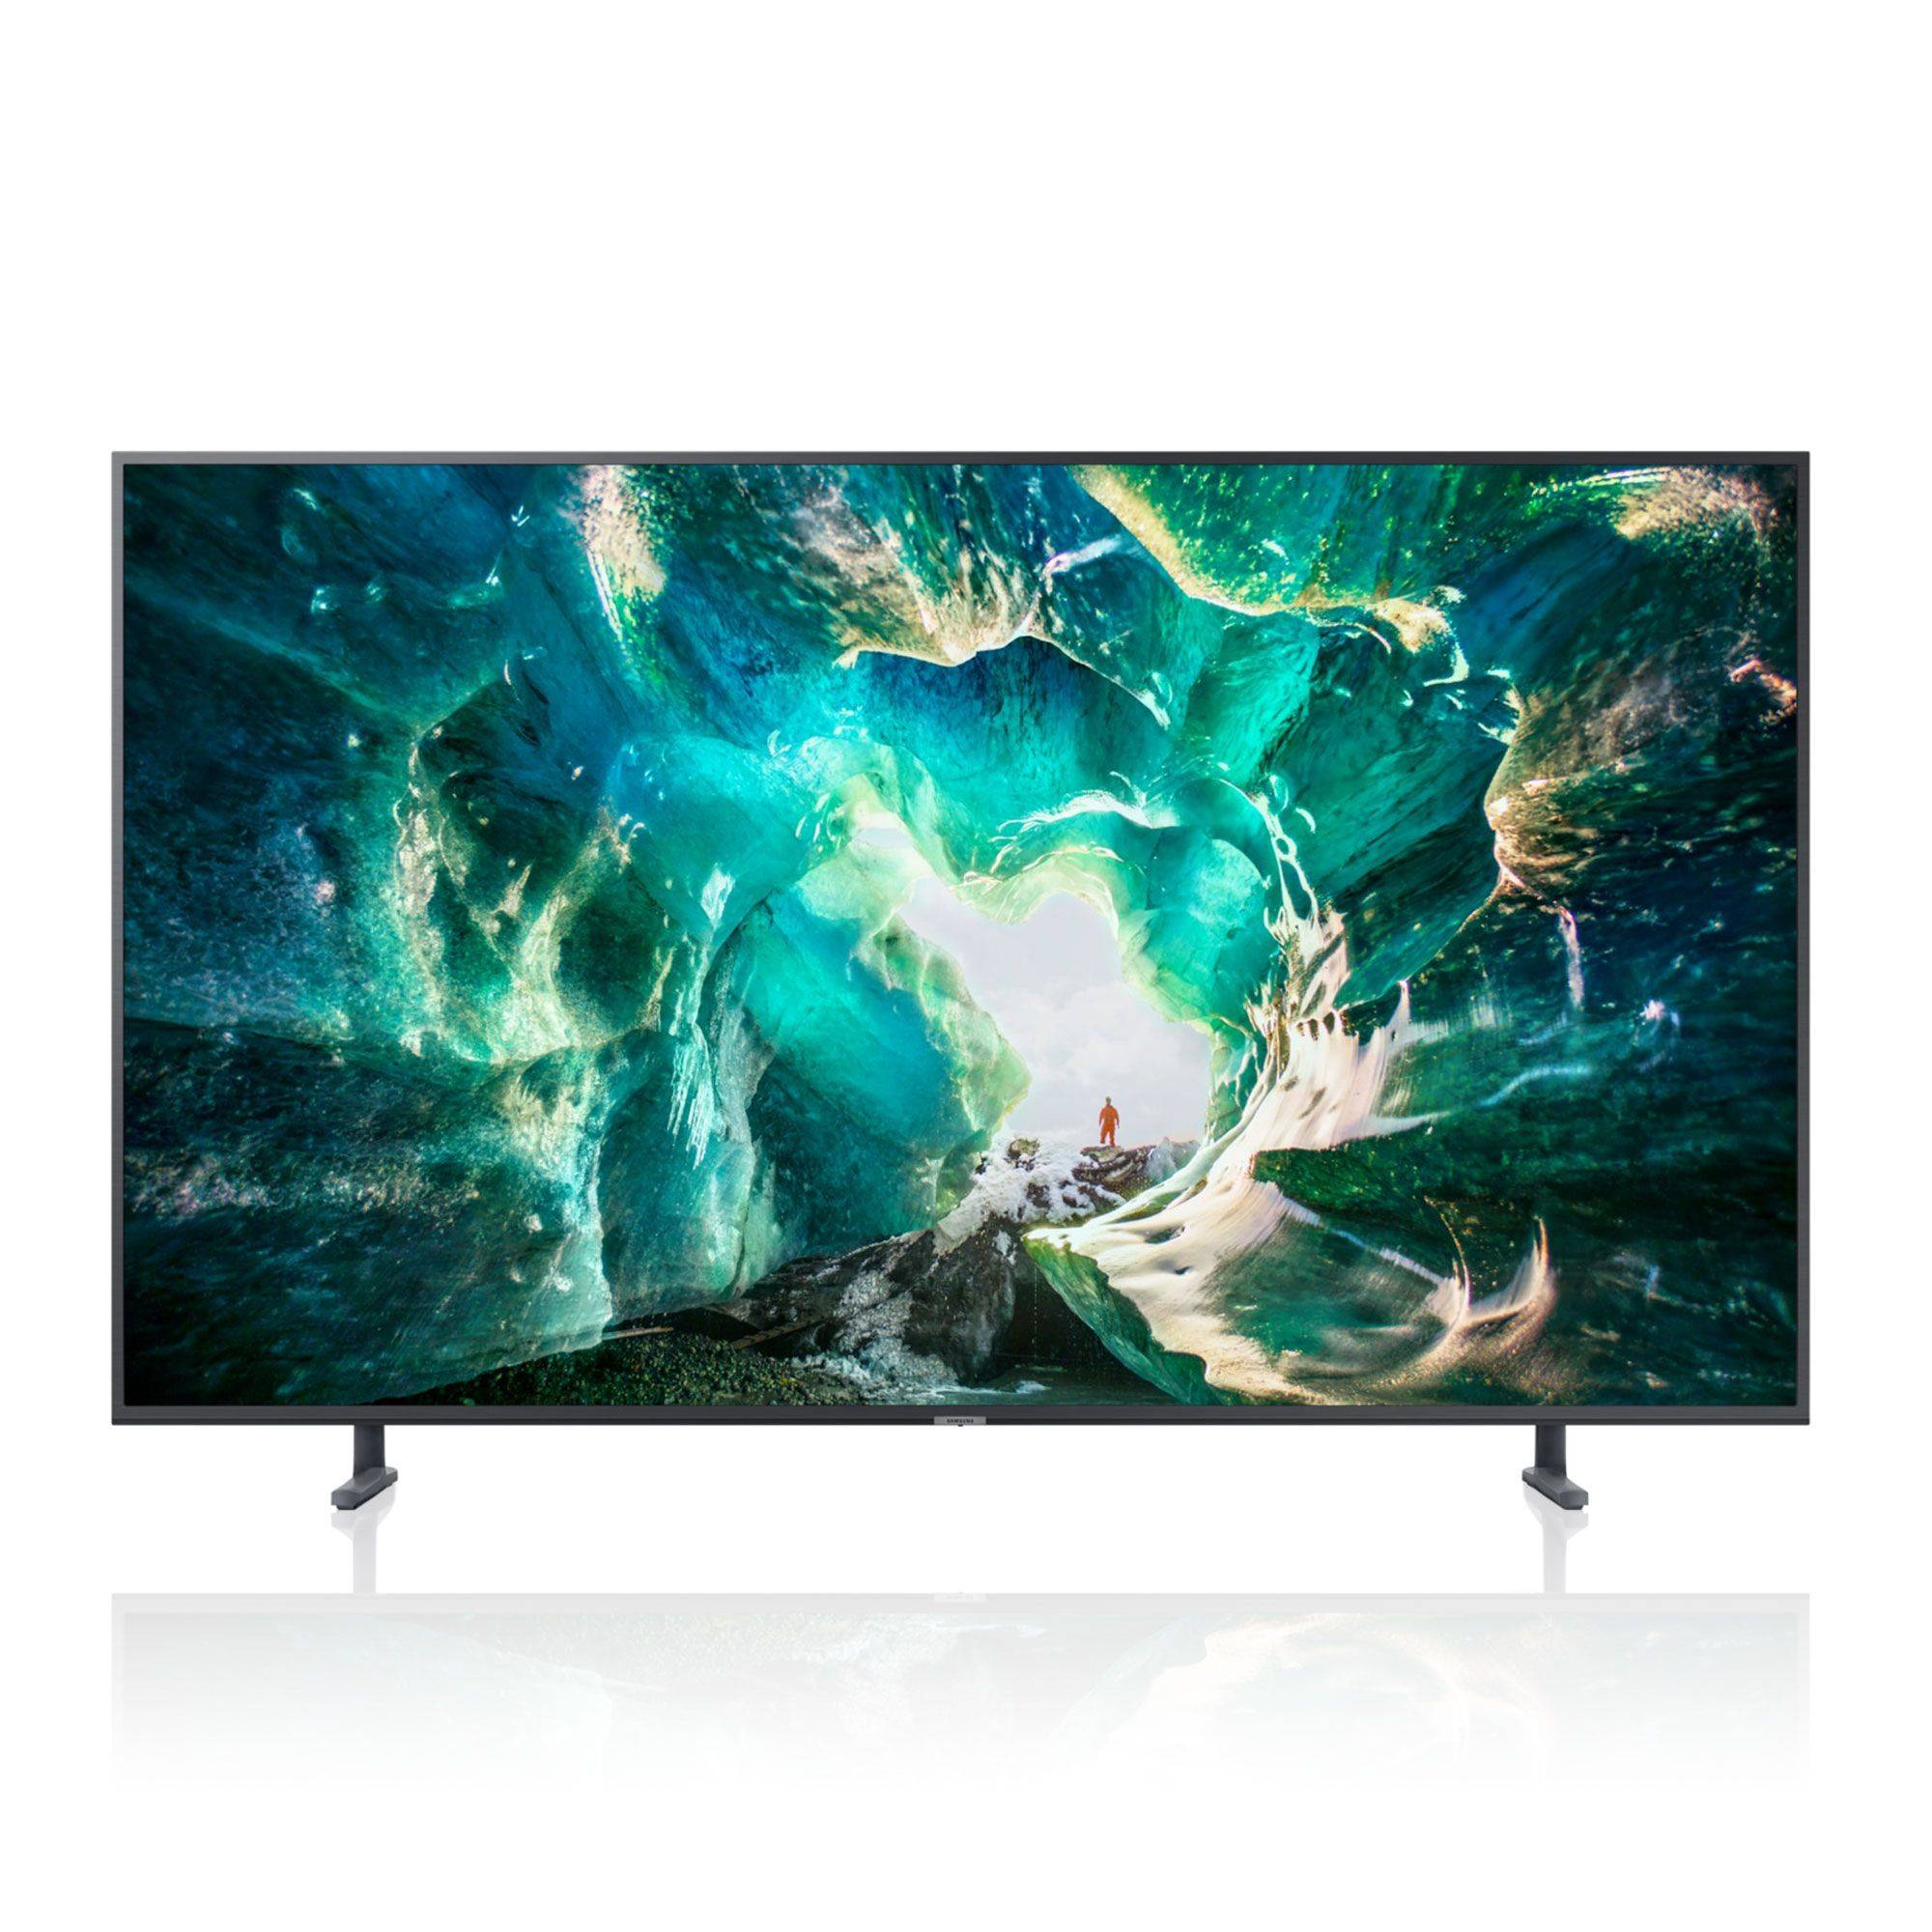 Samsung RU8000UXZT Smart TV LED UHD 4K 49